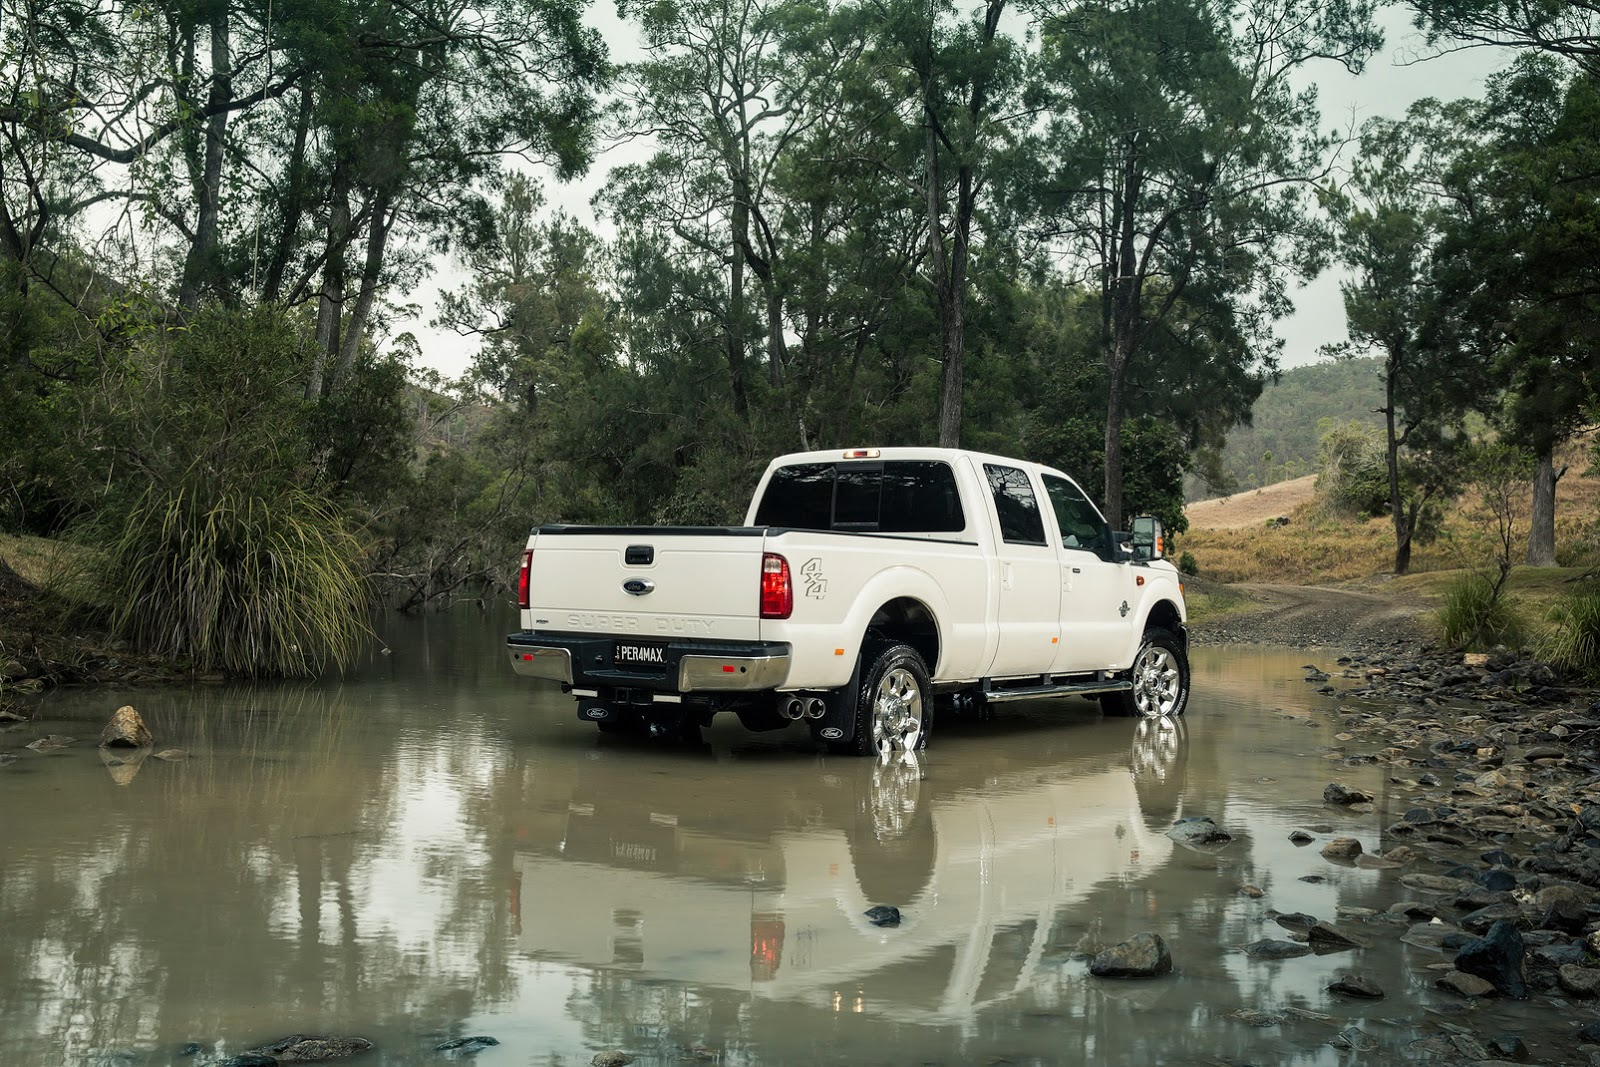 Rhd 2015 Ford F 250 Priced From 105k In Australia Autoevolution King Ranch Sel Performax